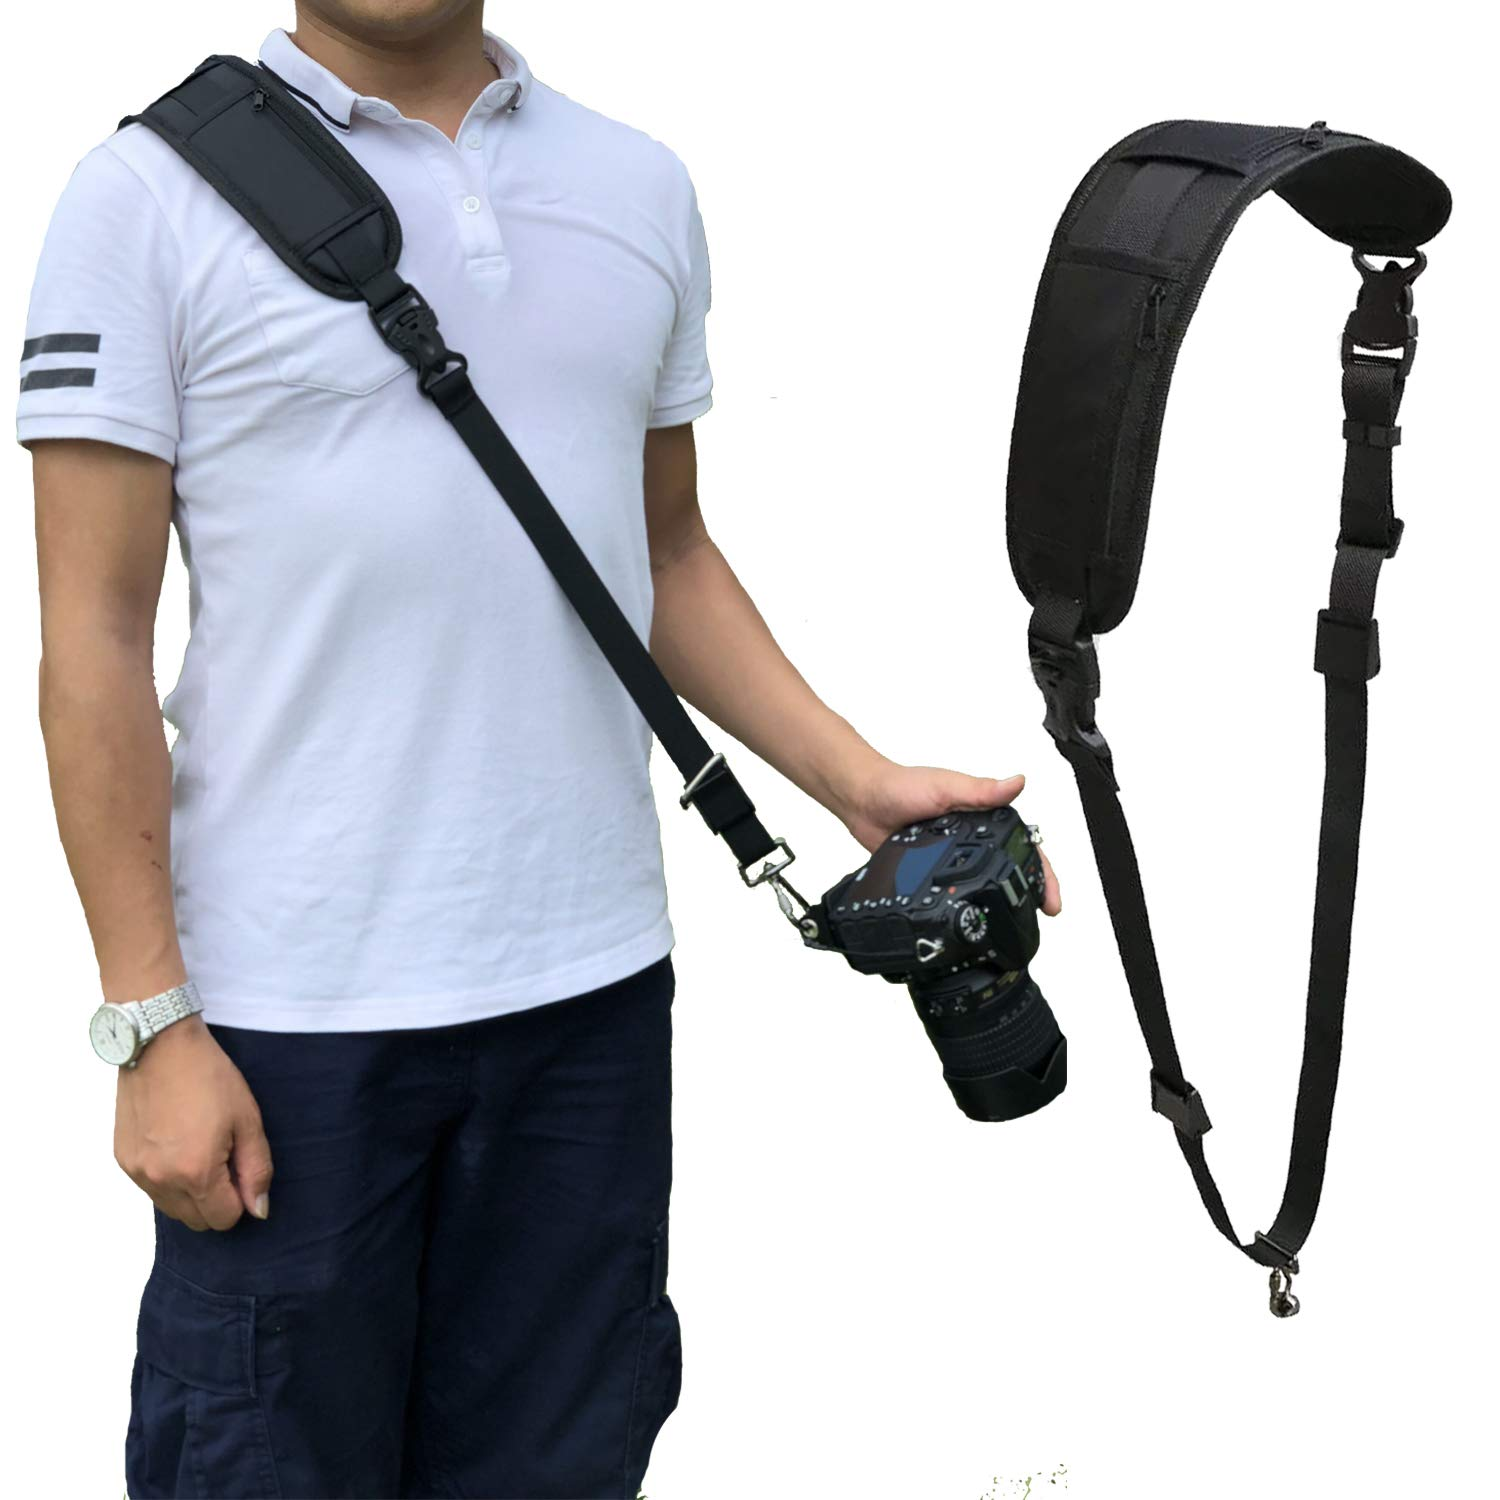 Bwealthest Camera Strap, DSLR Camera Neck Shoulder Strap —— Soft Neoprene Camera Sling Strap with Quick Release Safety Tether Adjustable Strap for Canon, Fujifilm, Nikon, Panasonic, Sony and More DSLR by Bwealthest